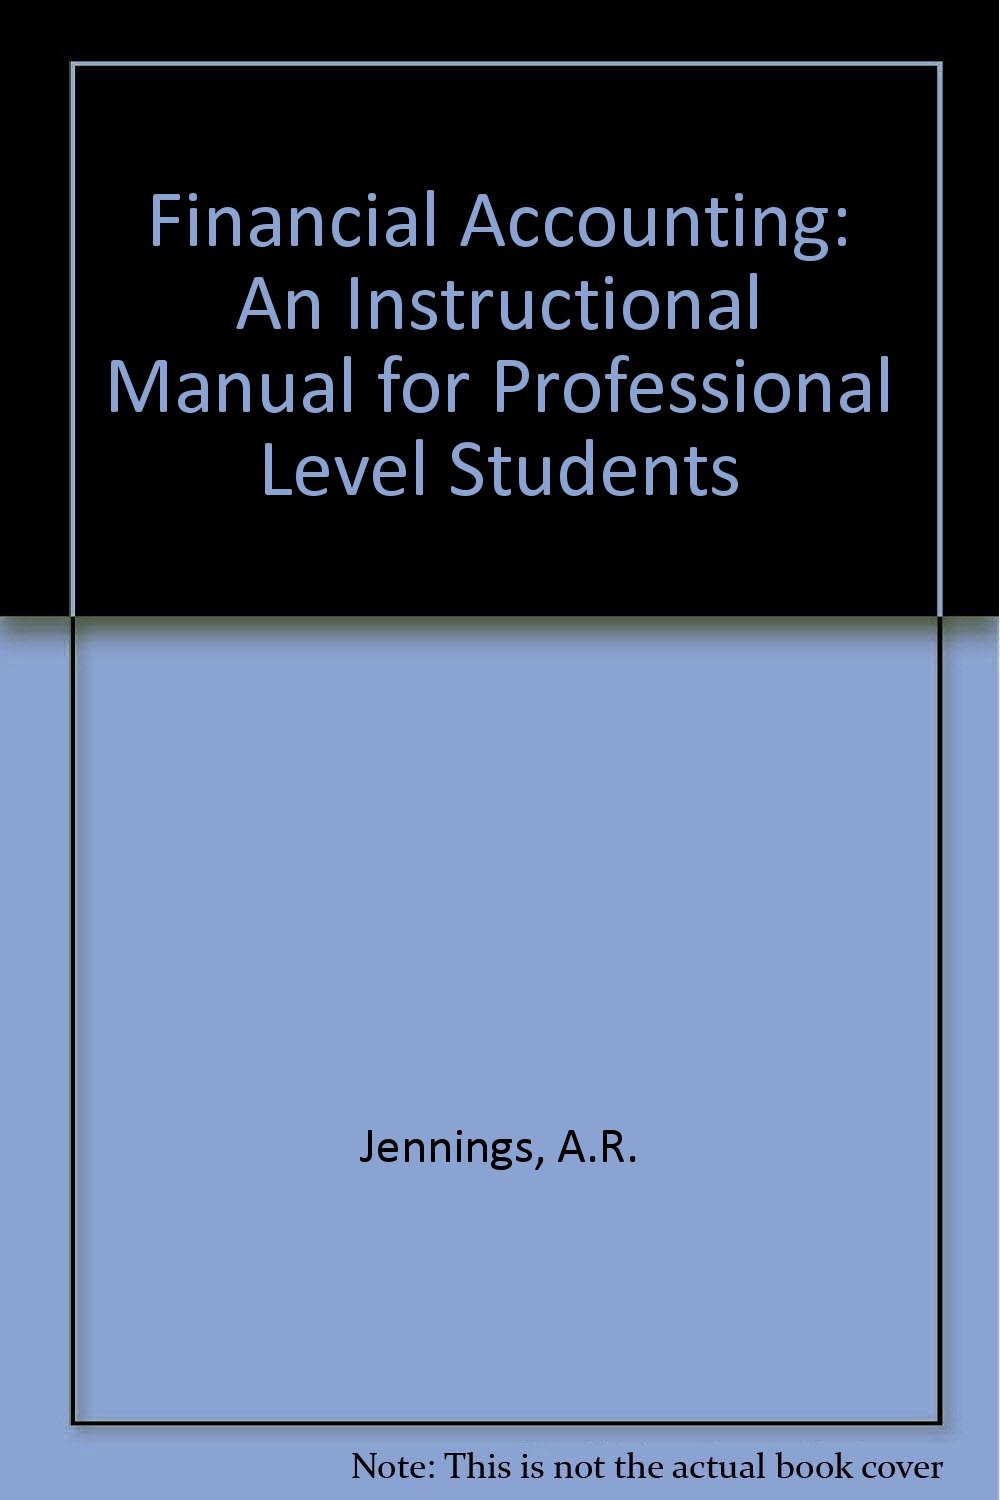 Financial Accounting: v. 2: An Instructional Manual for Professional Level  Students: A. R. Jennings: 9780905435435: Amazon.com: Books